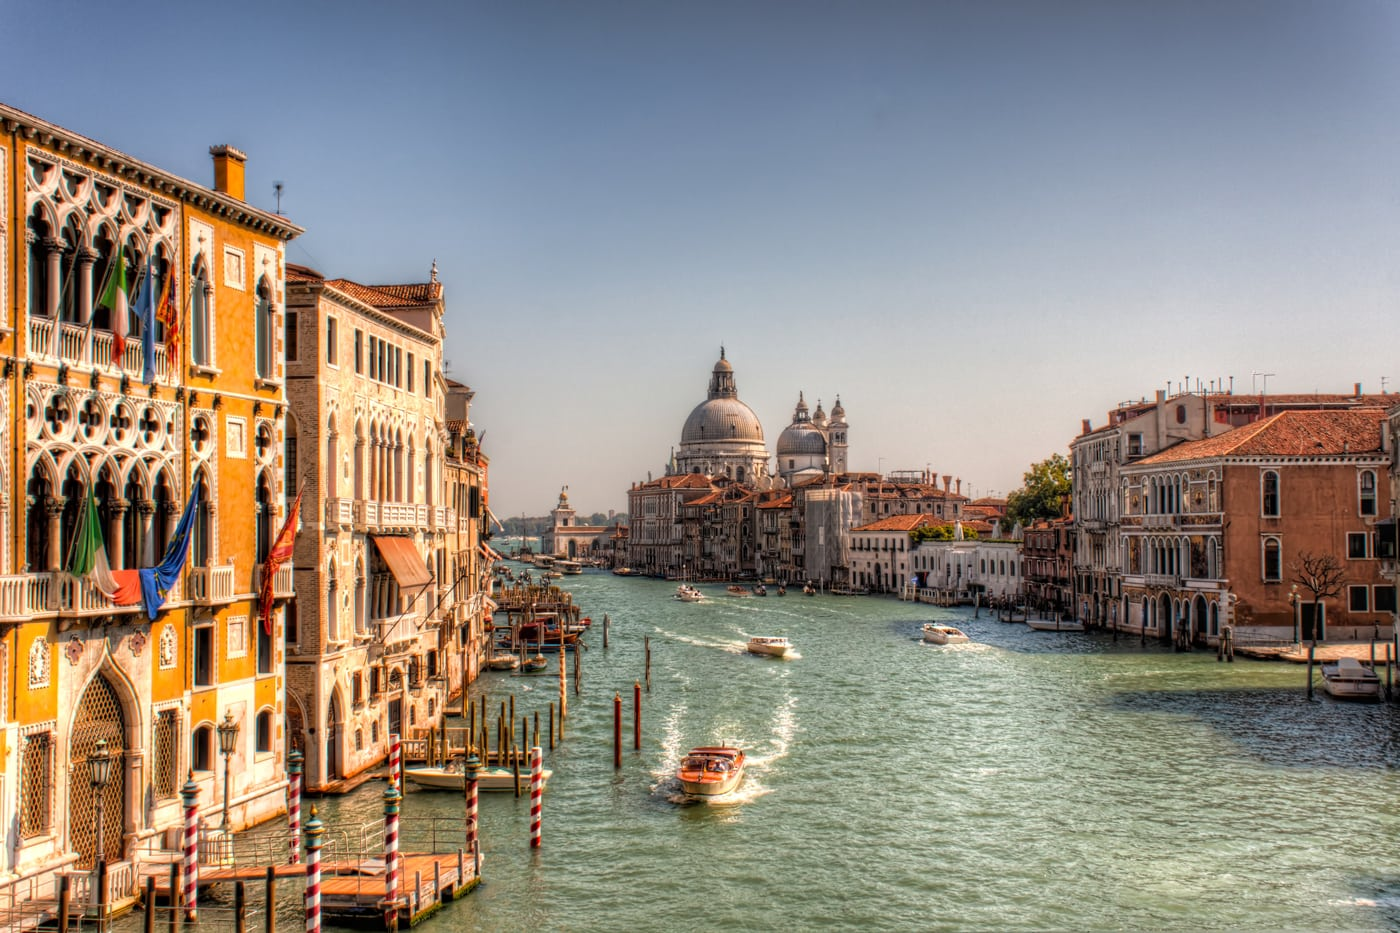 Venice Italy  city photo : ... .com The Grand Canal | Venice, Italy HDR Photo by Nico Trinkhaus